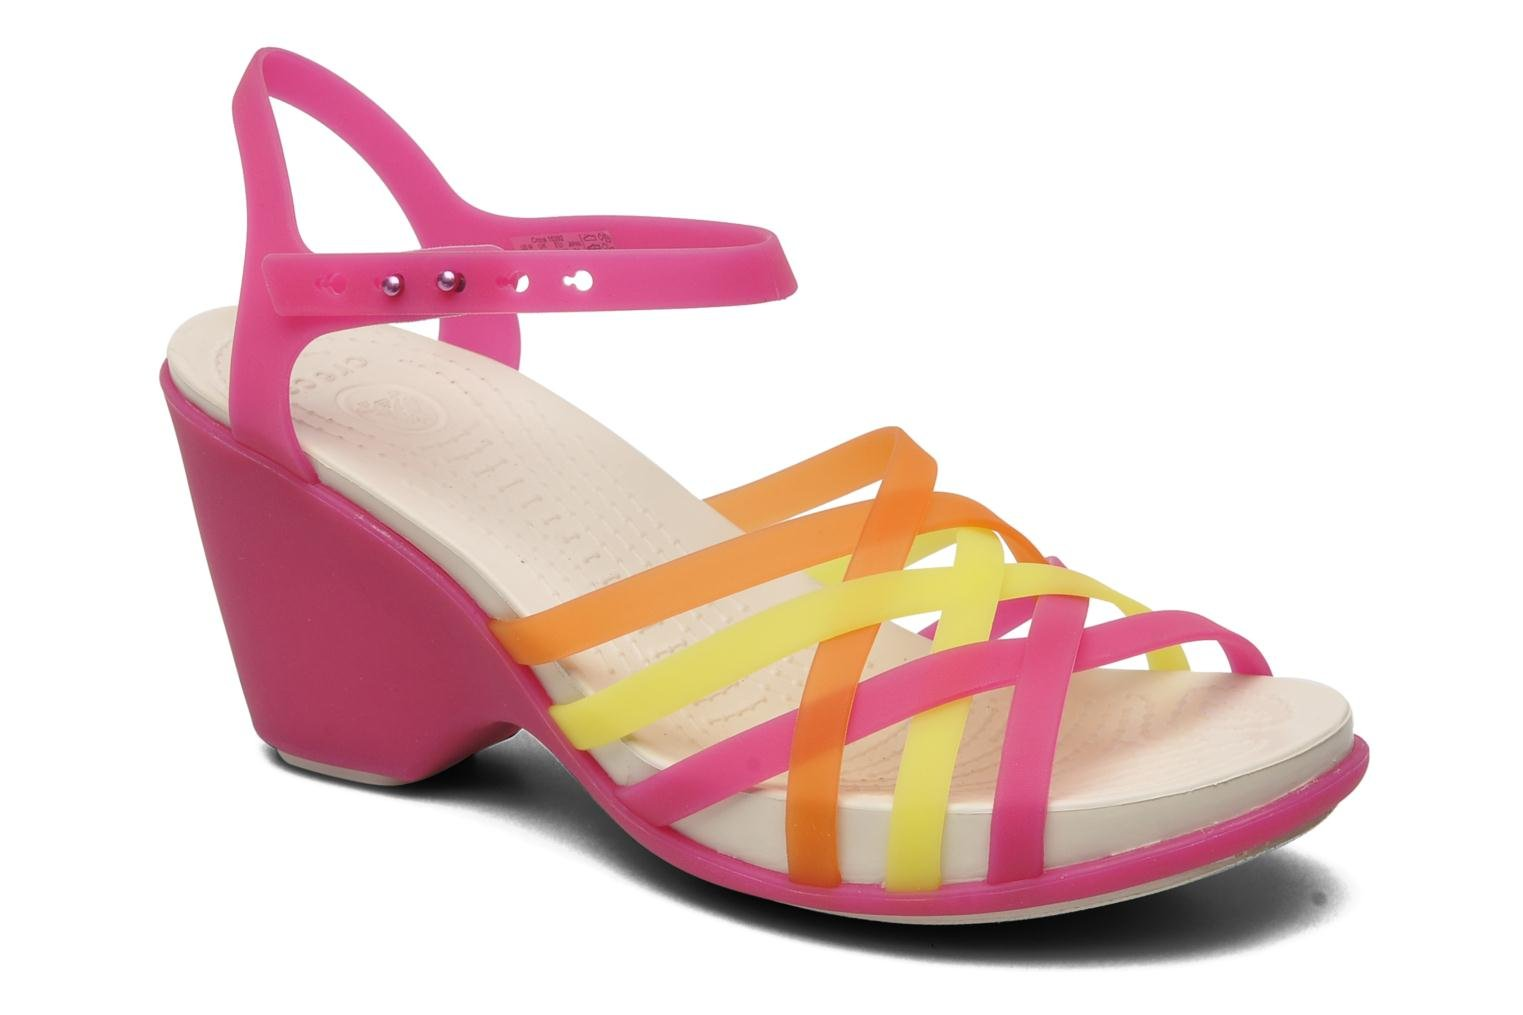 Huarache Sandal Wedge Fuchsia/Grapefruit